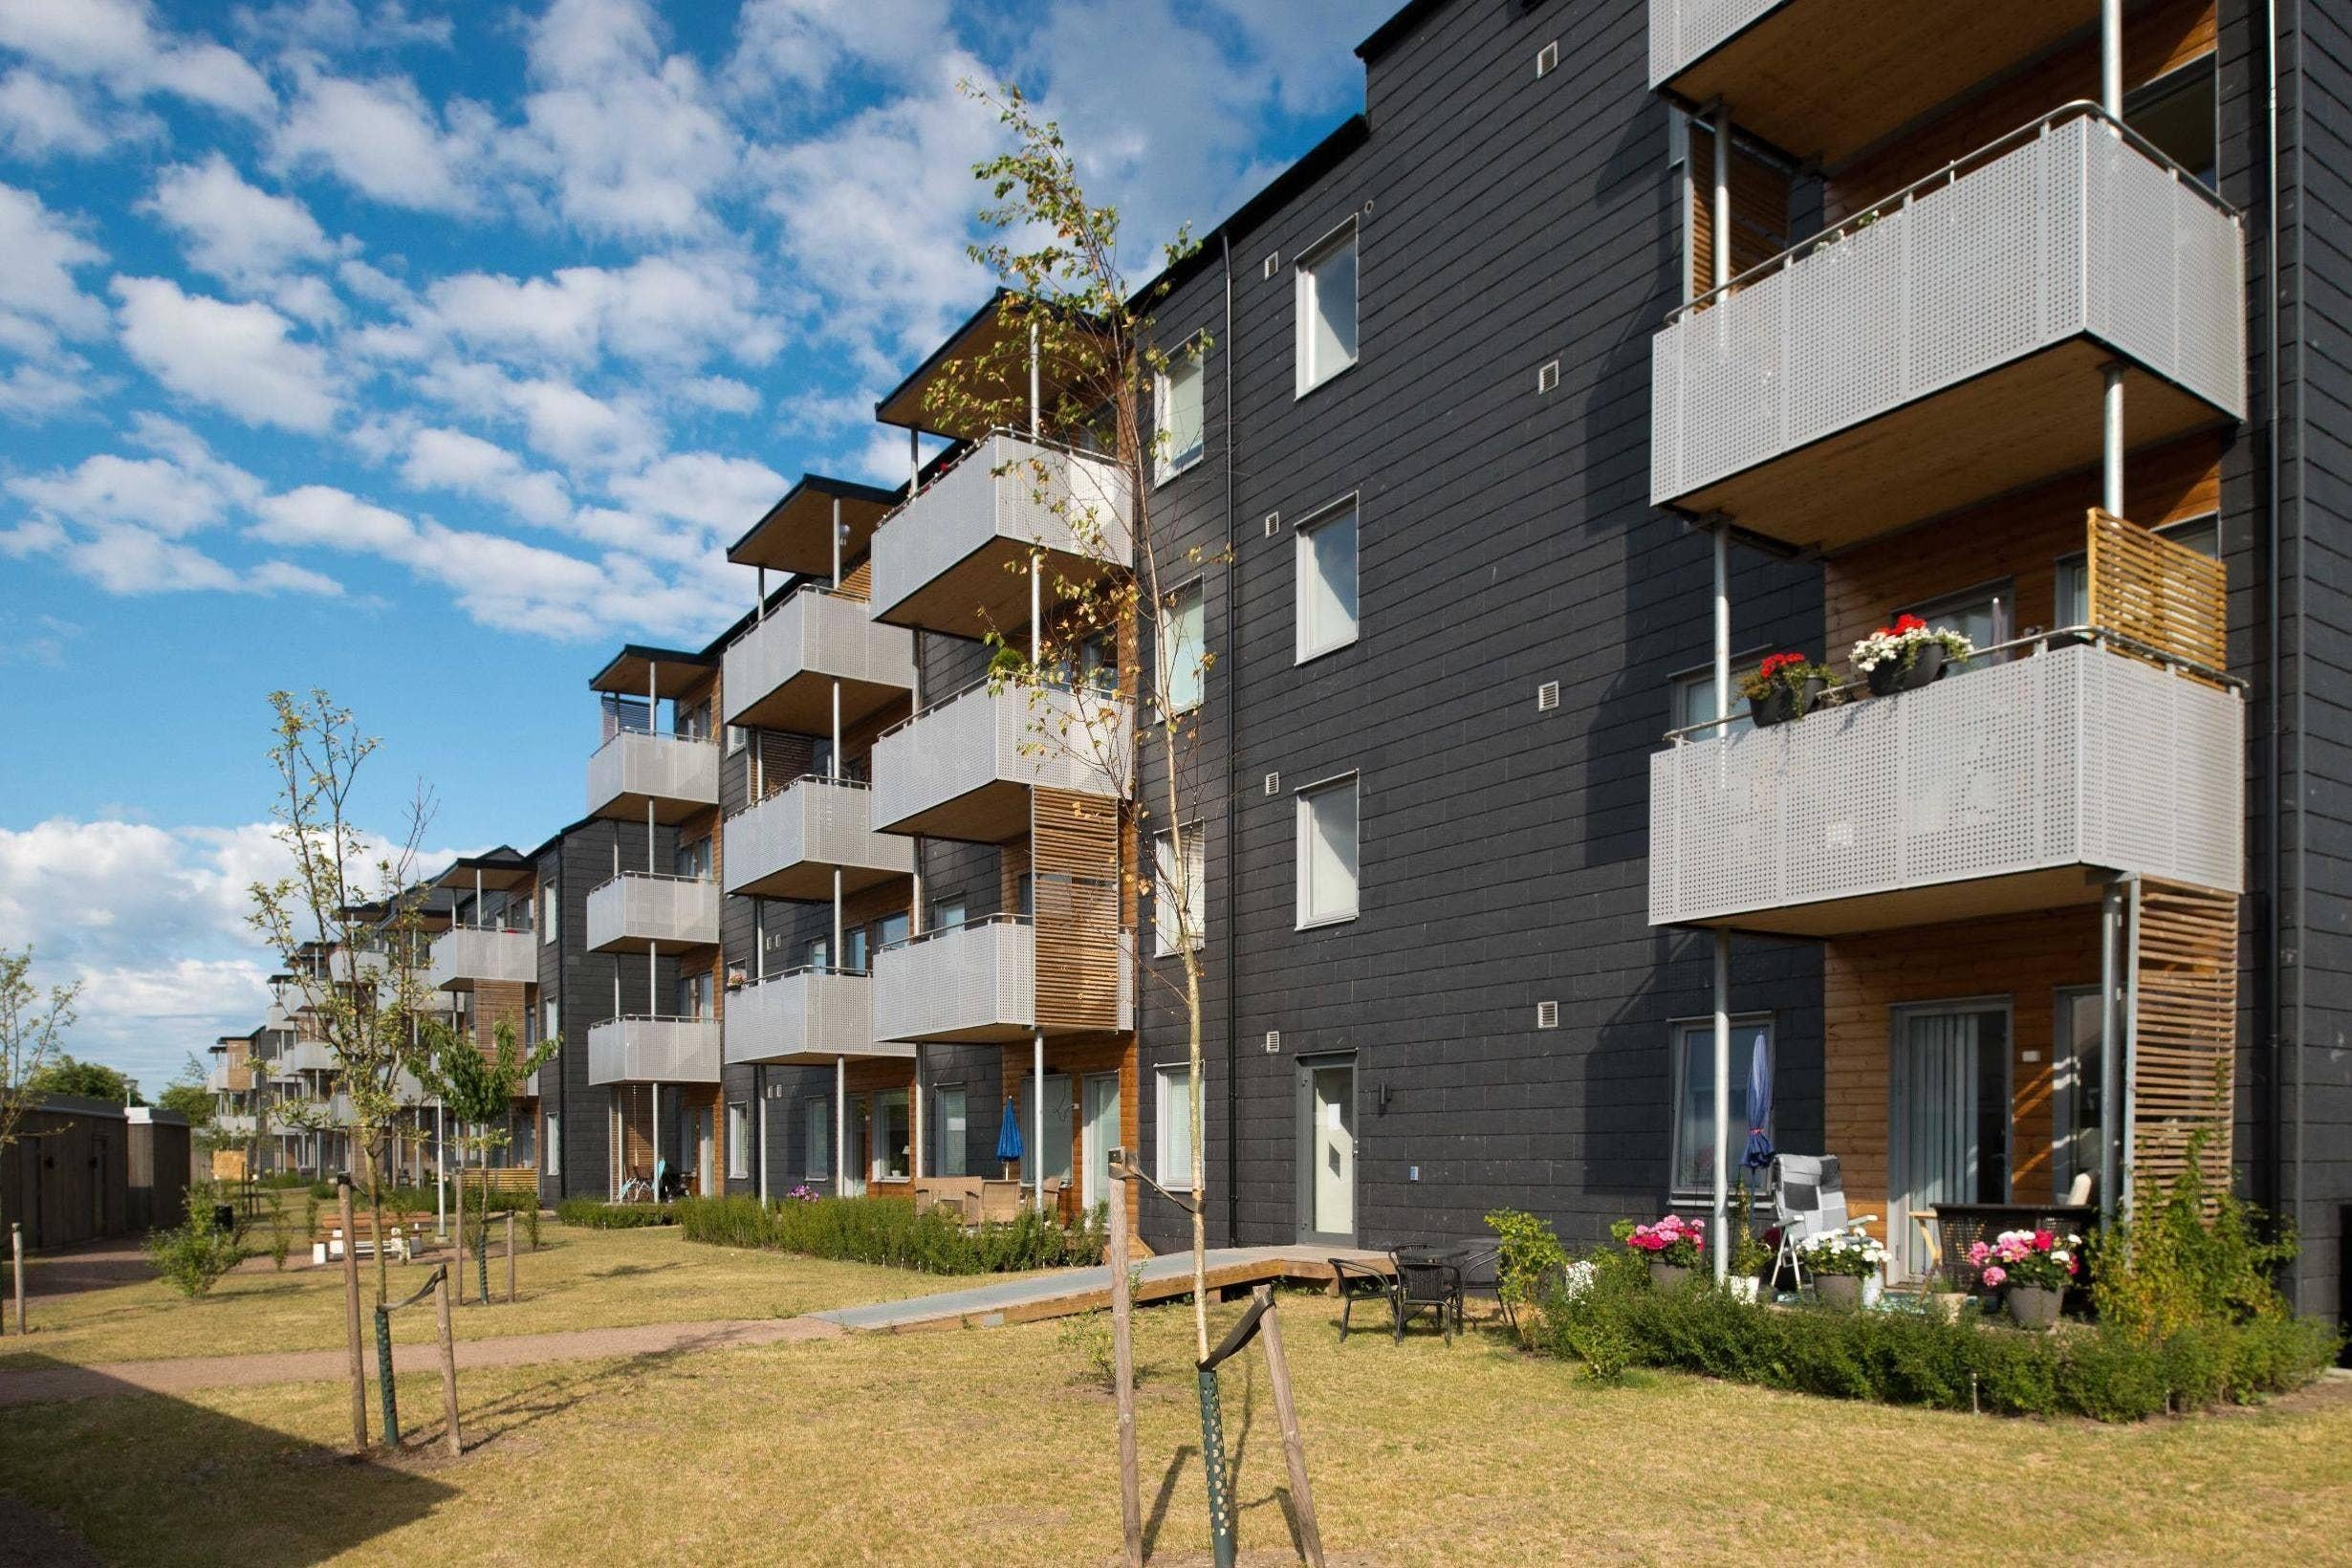 affordable homes - latest news, breaking stories and comment - The